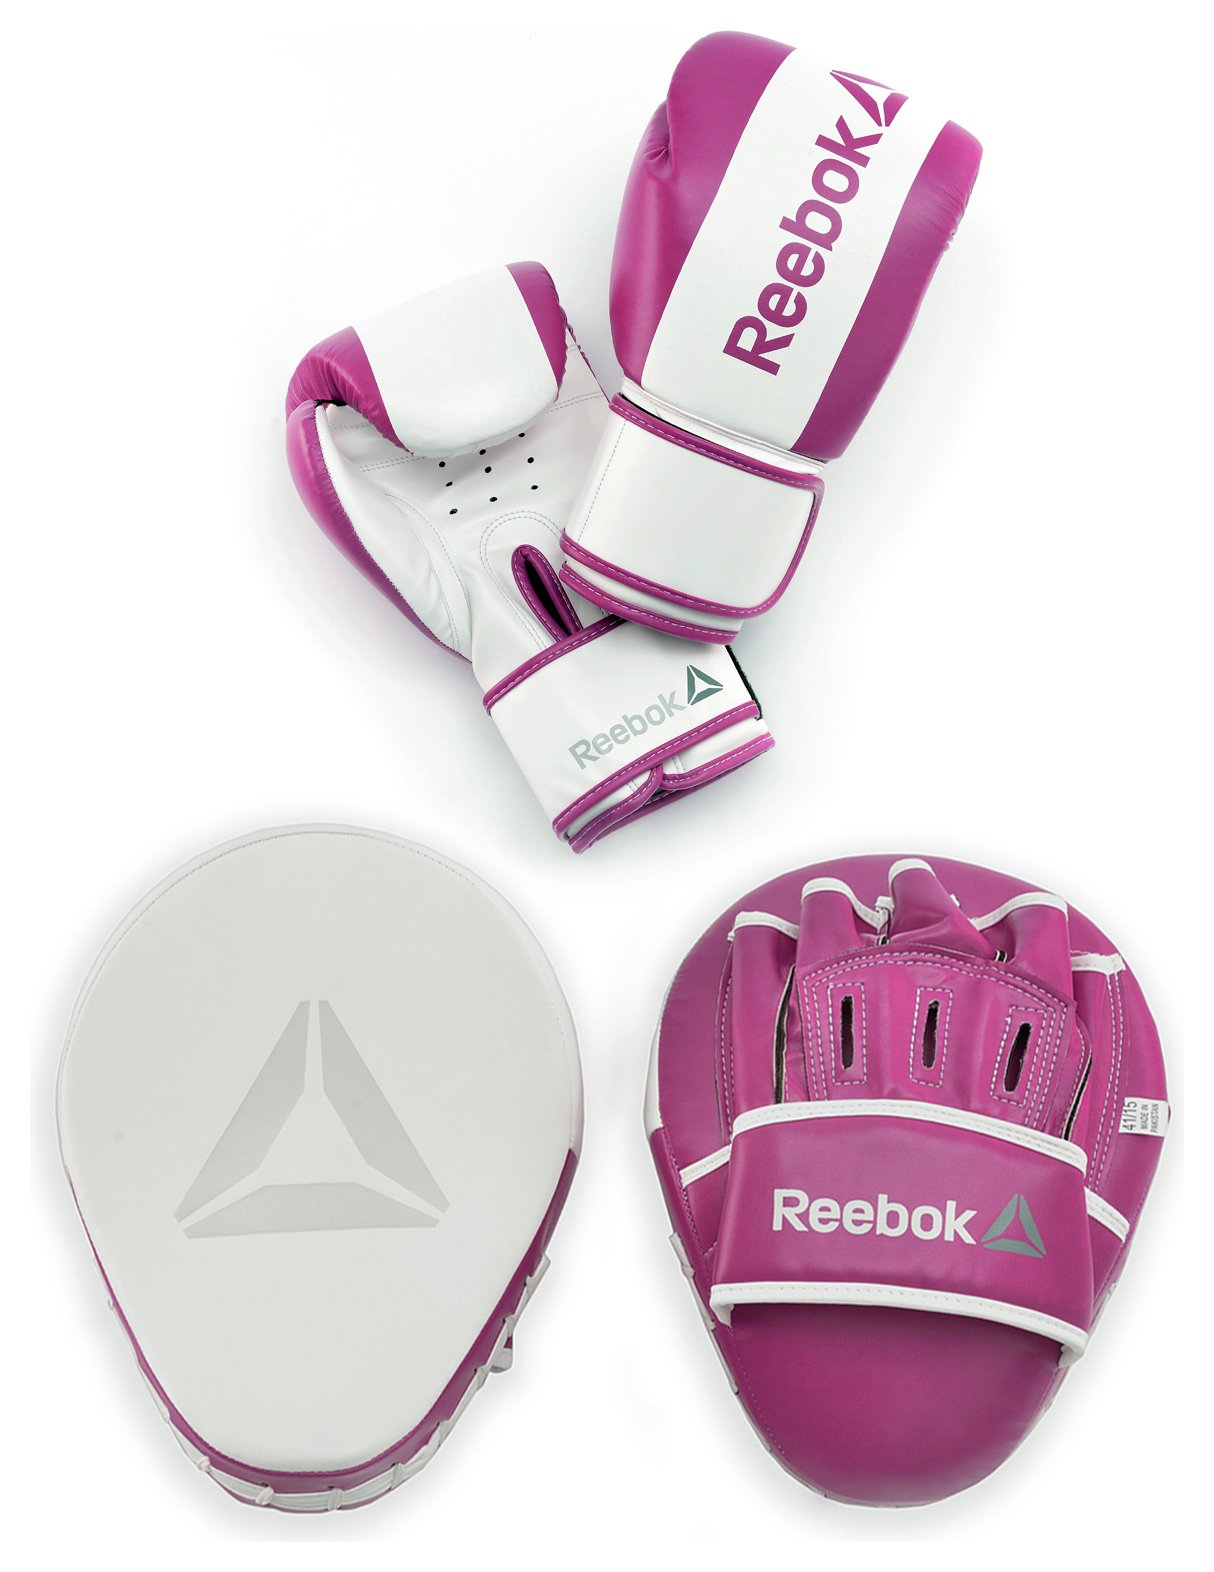 Reebok Womans Boxercise Set lowest price